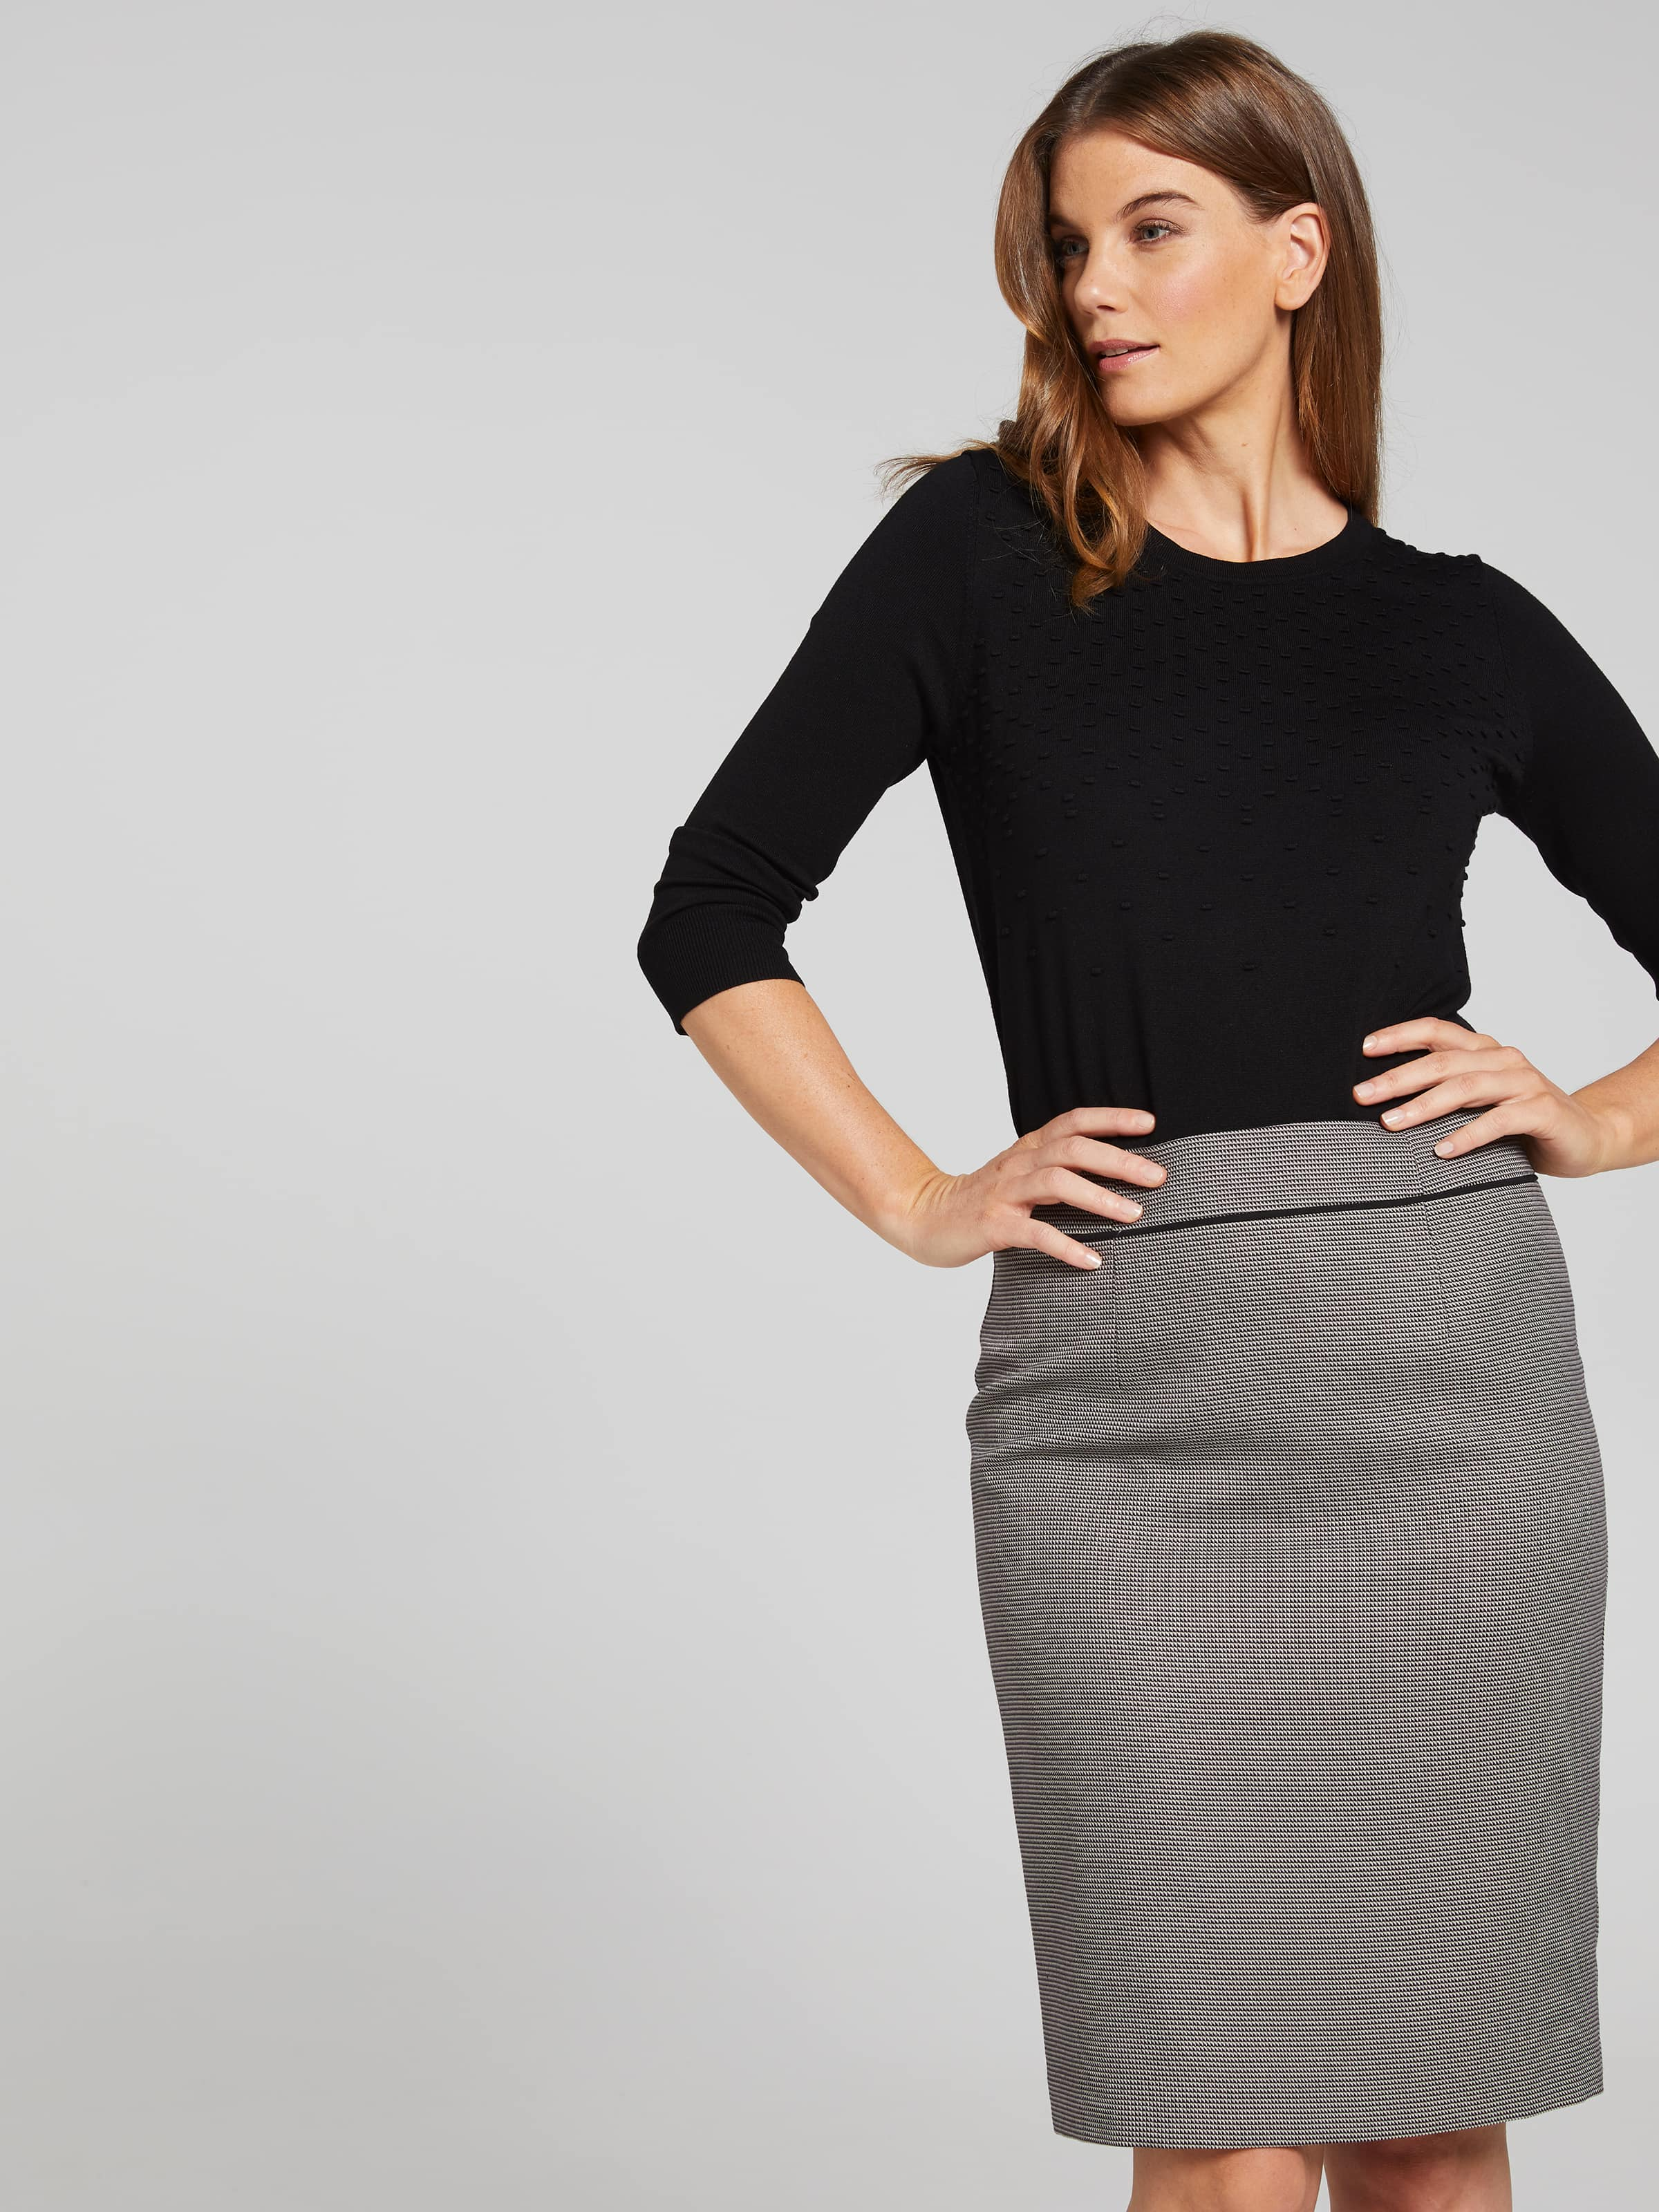 Image of Jacqui E Australia Jacqui E Geo Piped Suit Skirt